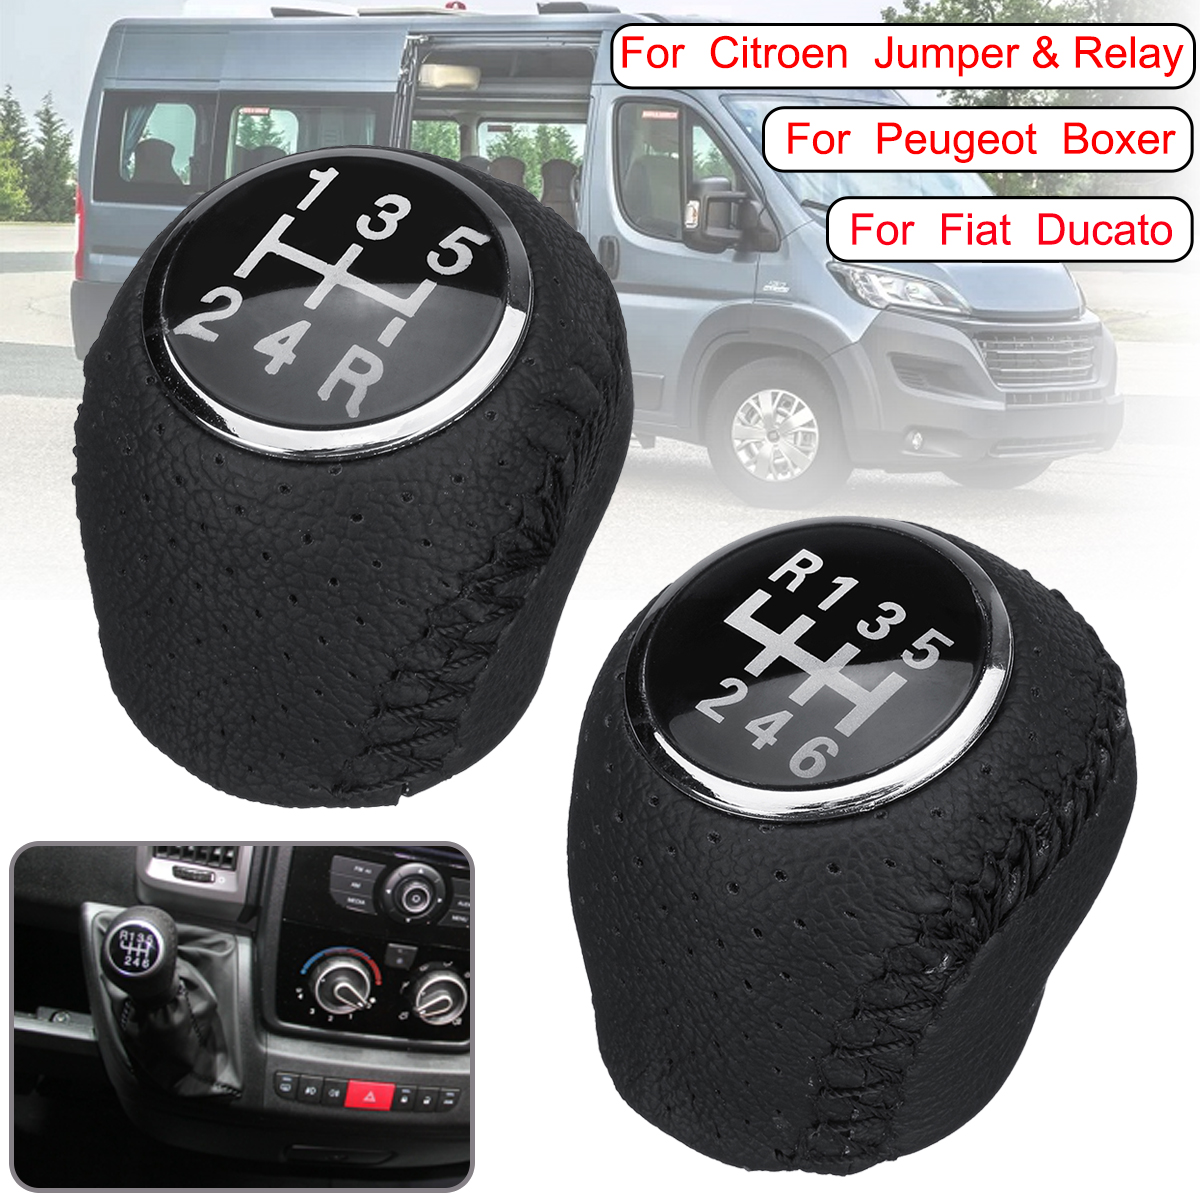 5 6 Speed Leather Gear Shift Knob Lever Shifter Handball For Citroen Jumper Relay For Fiat Ducato For Peugeot Boxer 2002-2014